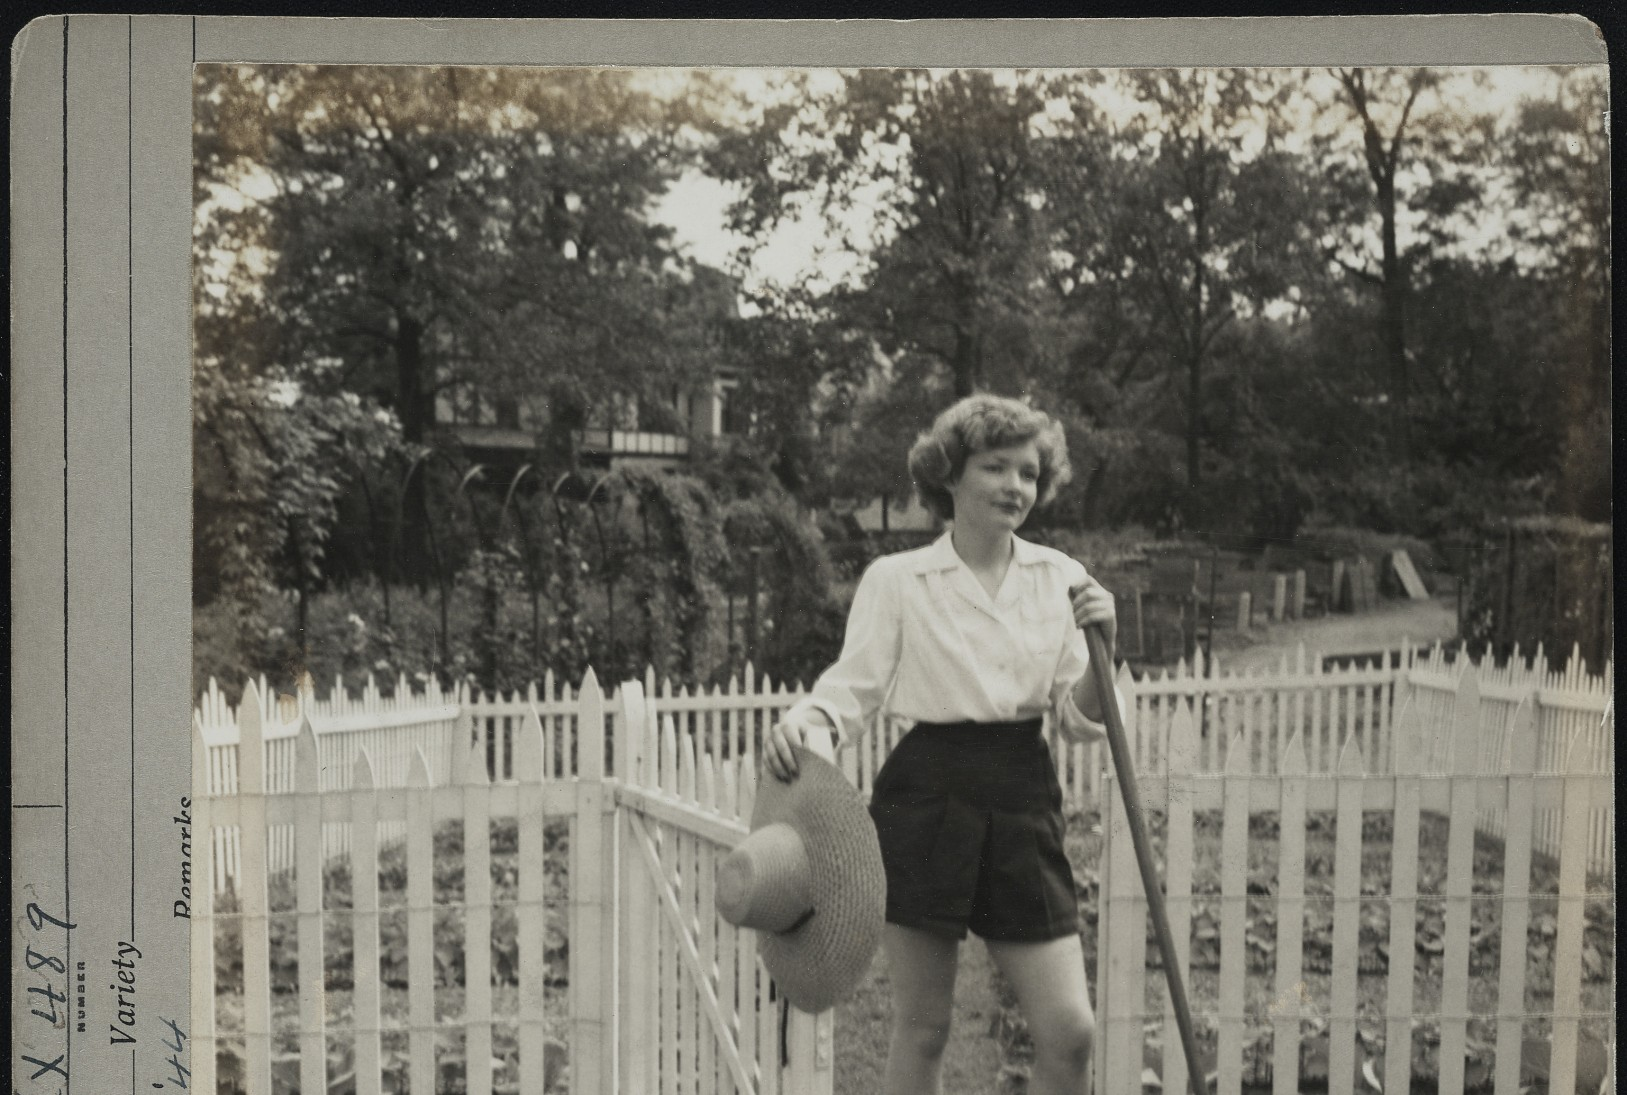 Vintage photo of woman holding a garden rake while opening gate in white picket fence surrounding a vegetable garden